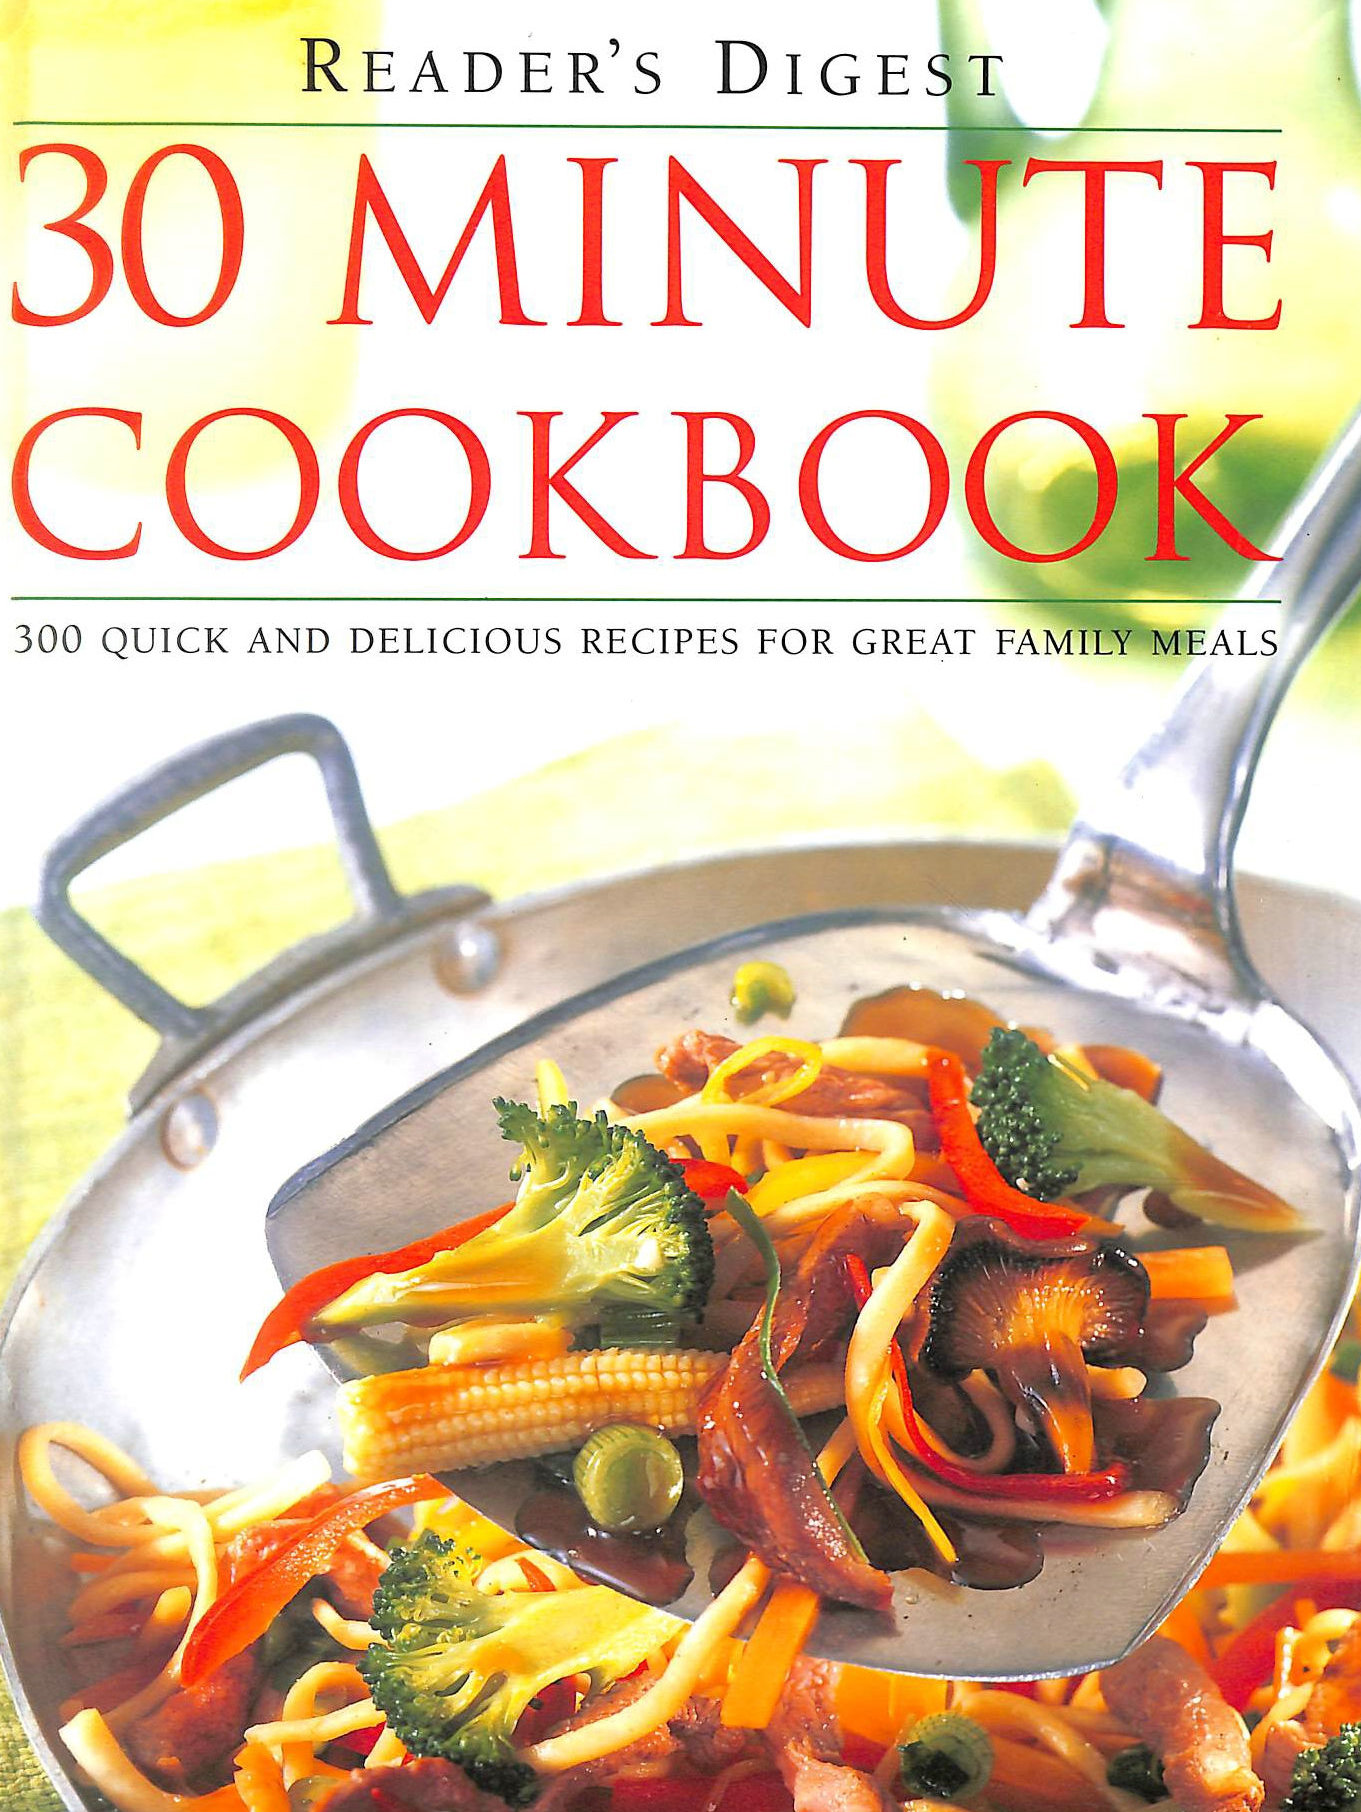 Image for 30 Minute Cookbook: 300 Quick and Delicious Recipes for Great Family Meals (Readers Digest)